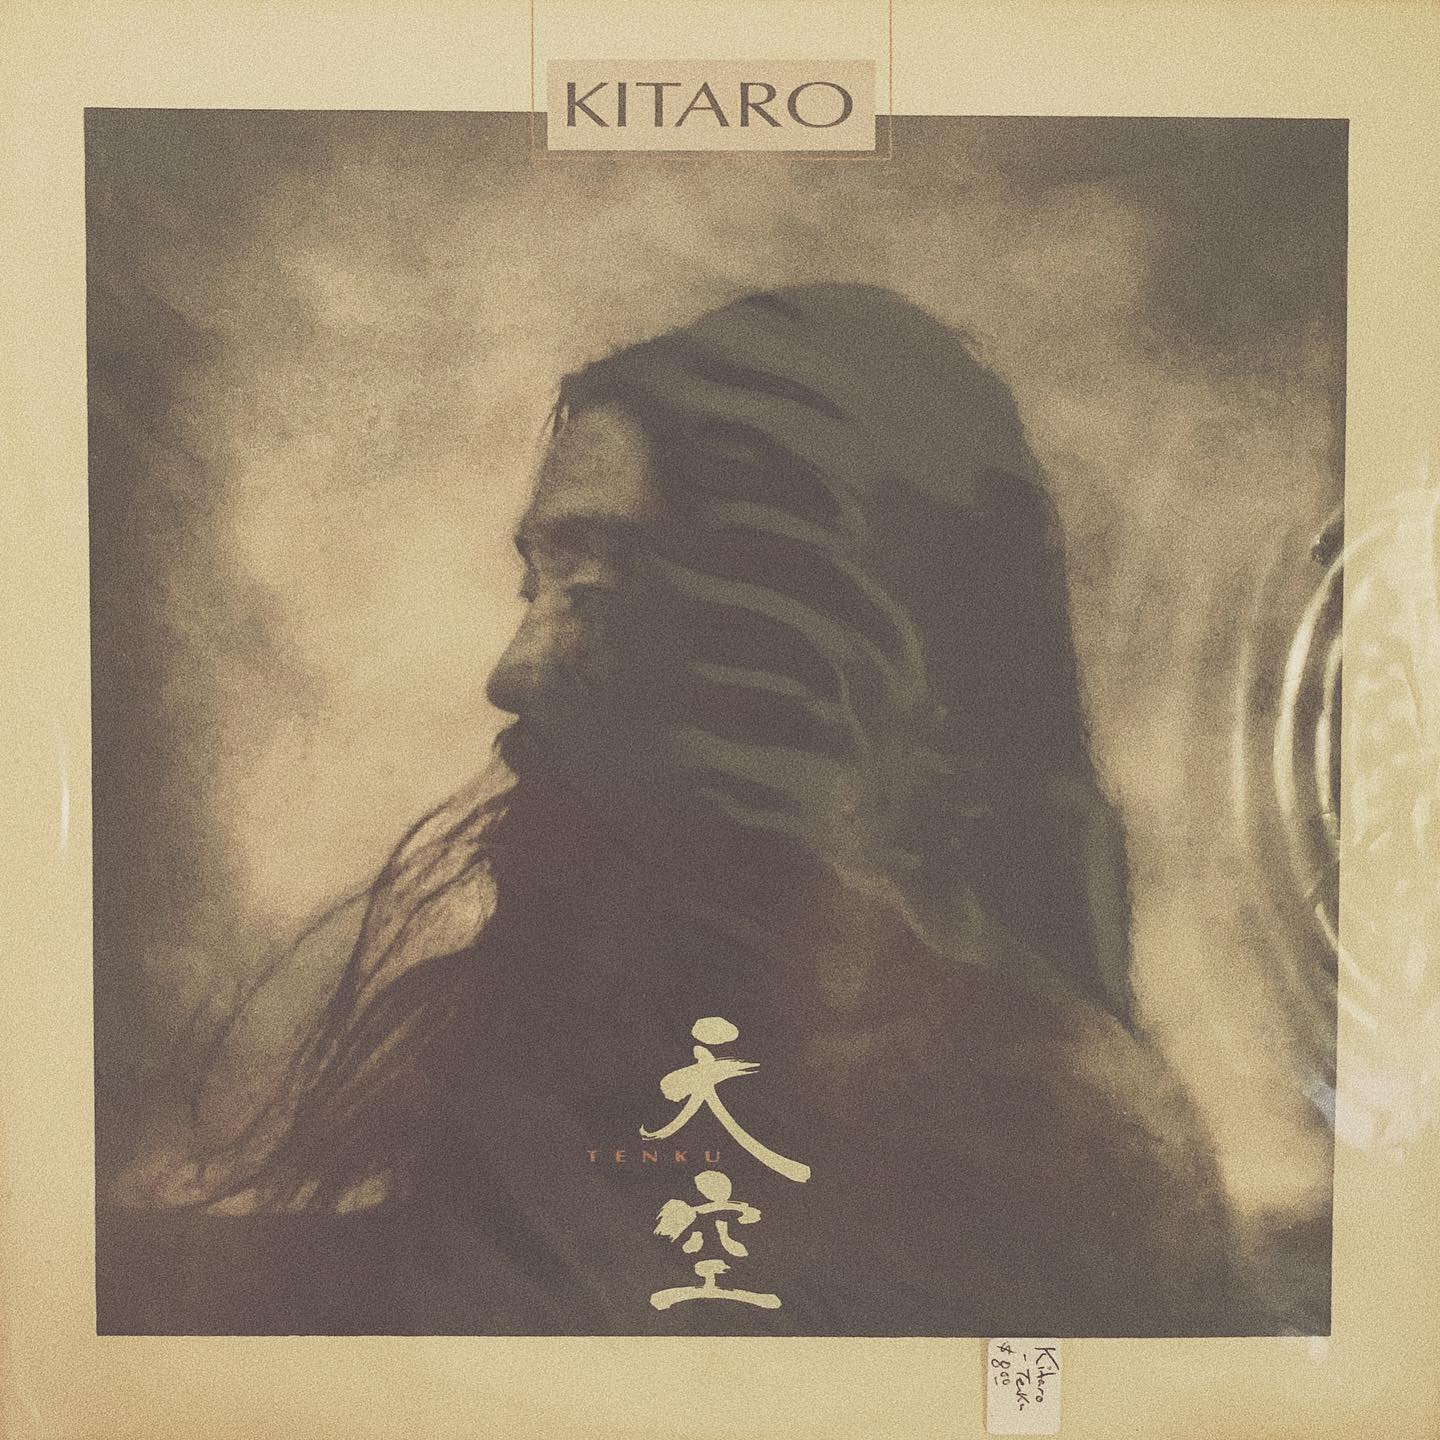 #ondeck Kitaro - Tenku. Some ahead of his time Vangelis-esque sounds. Lots of synths combined with traditional instrumentation.